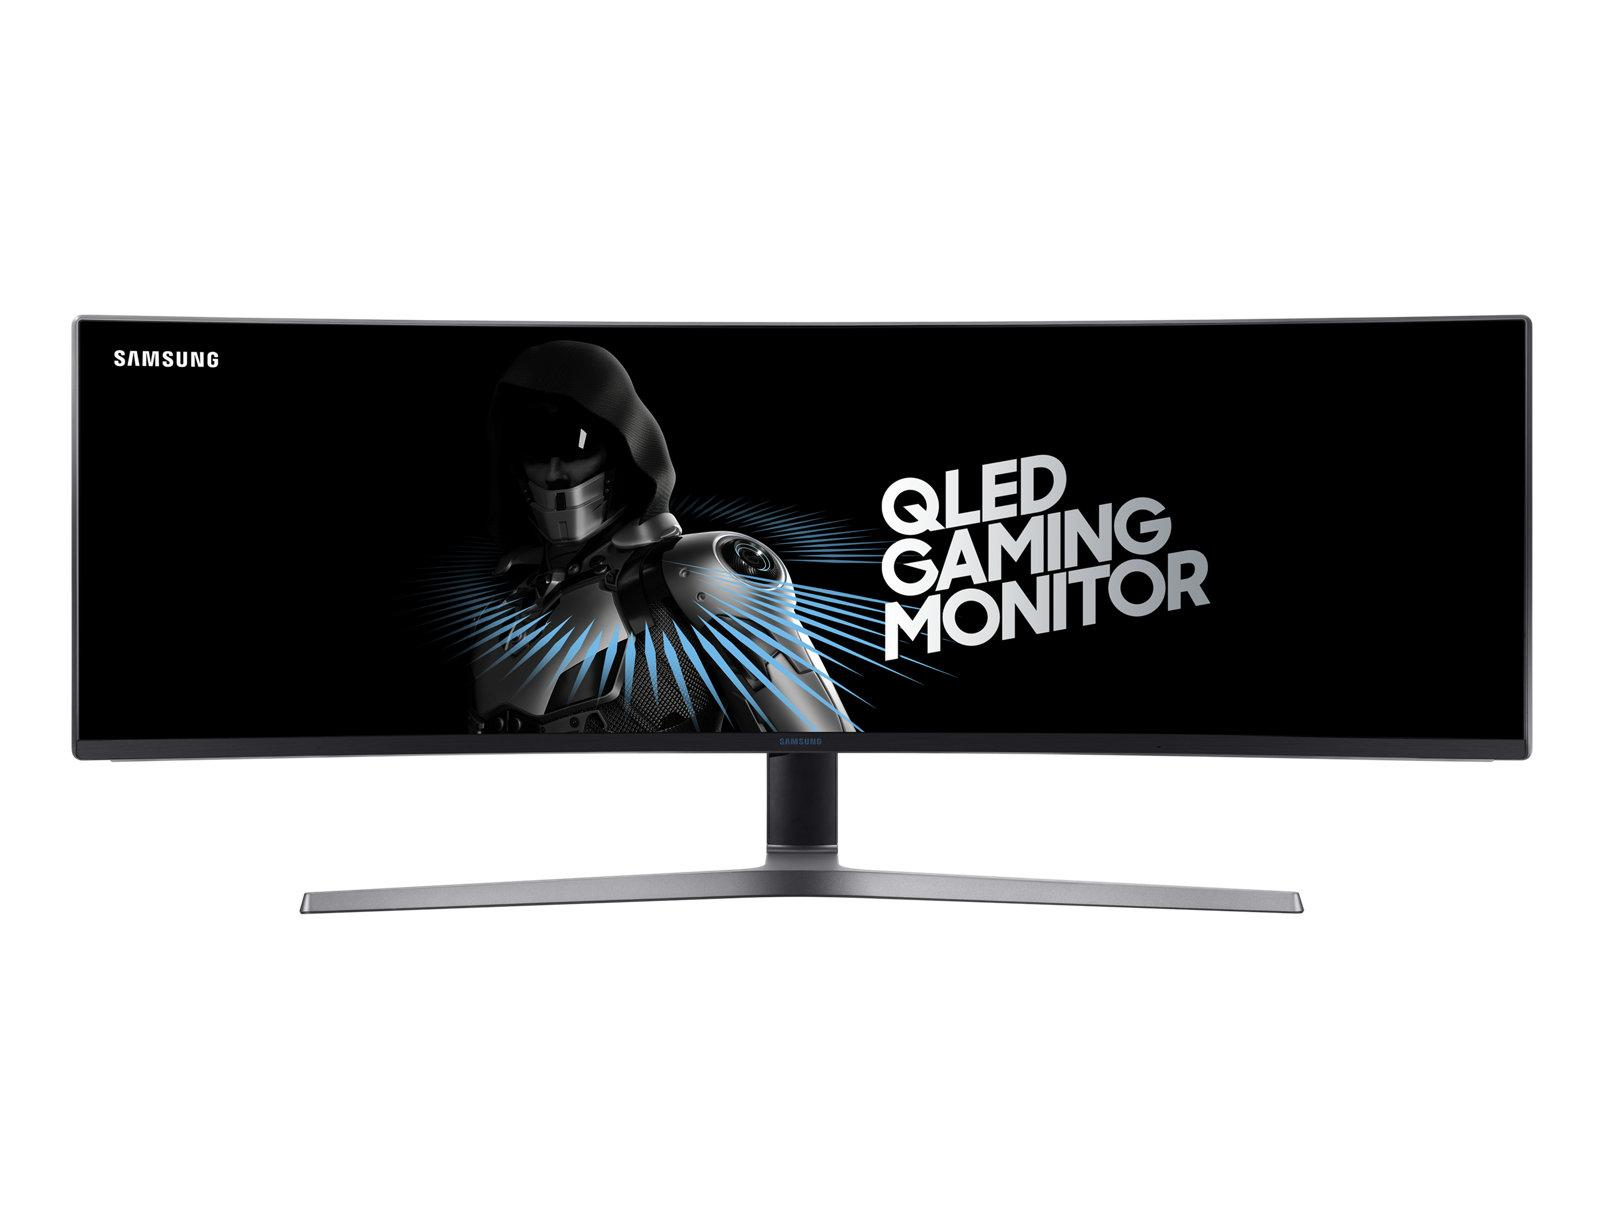 SAMSUNG 49-inch QLED Gaming Monitor with 32:9 Super Ultra-Wide Screen (LC49HG90DMEXXS) (BNIB)